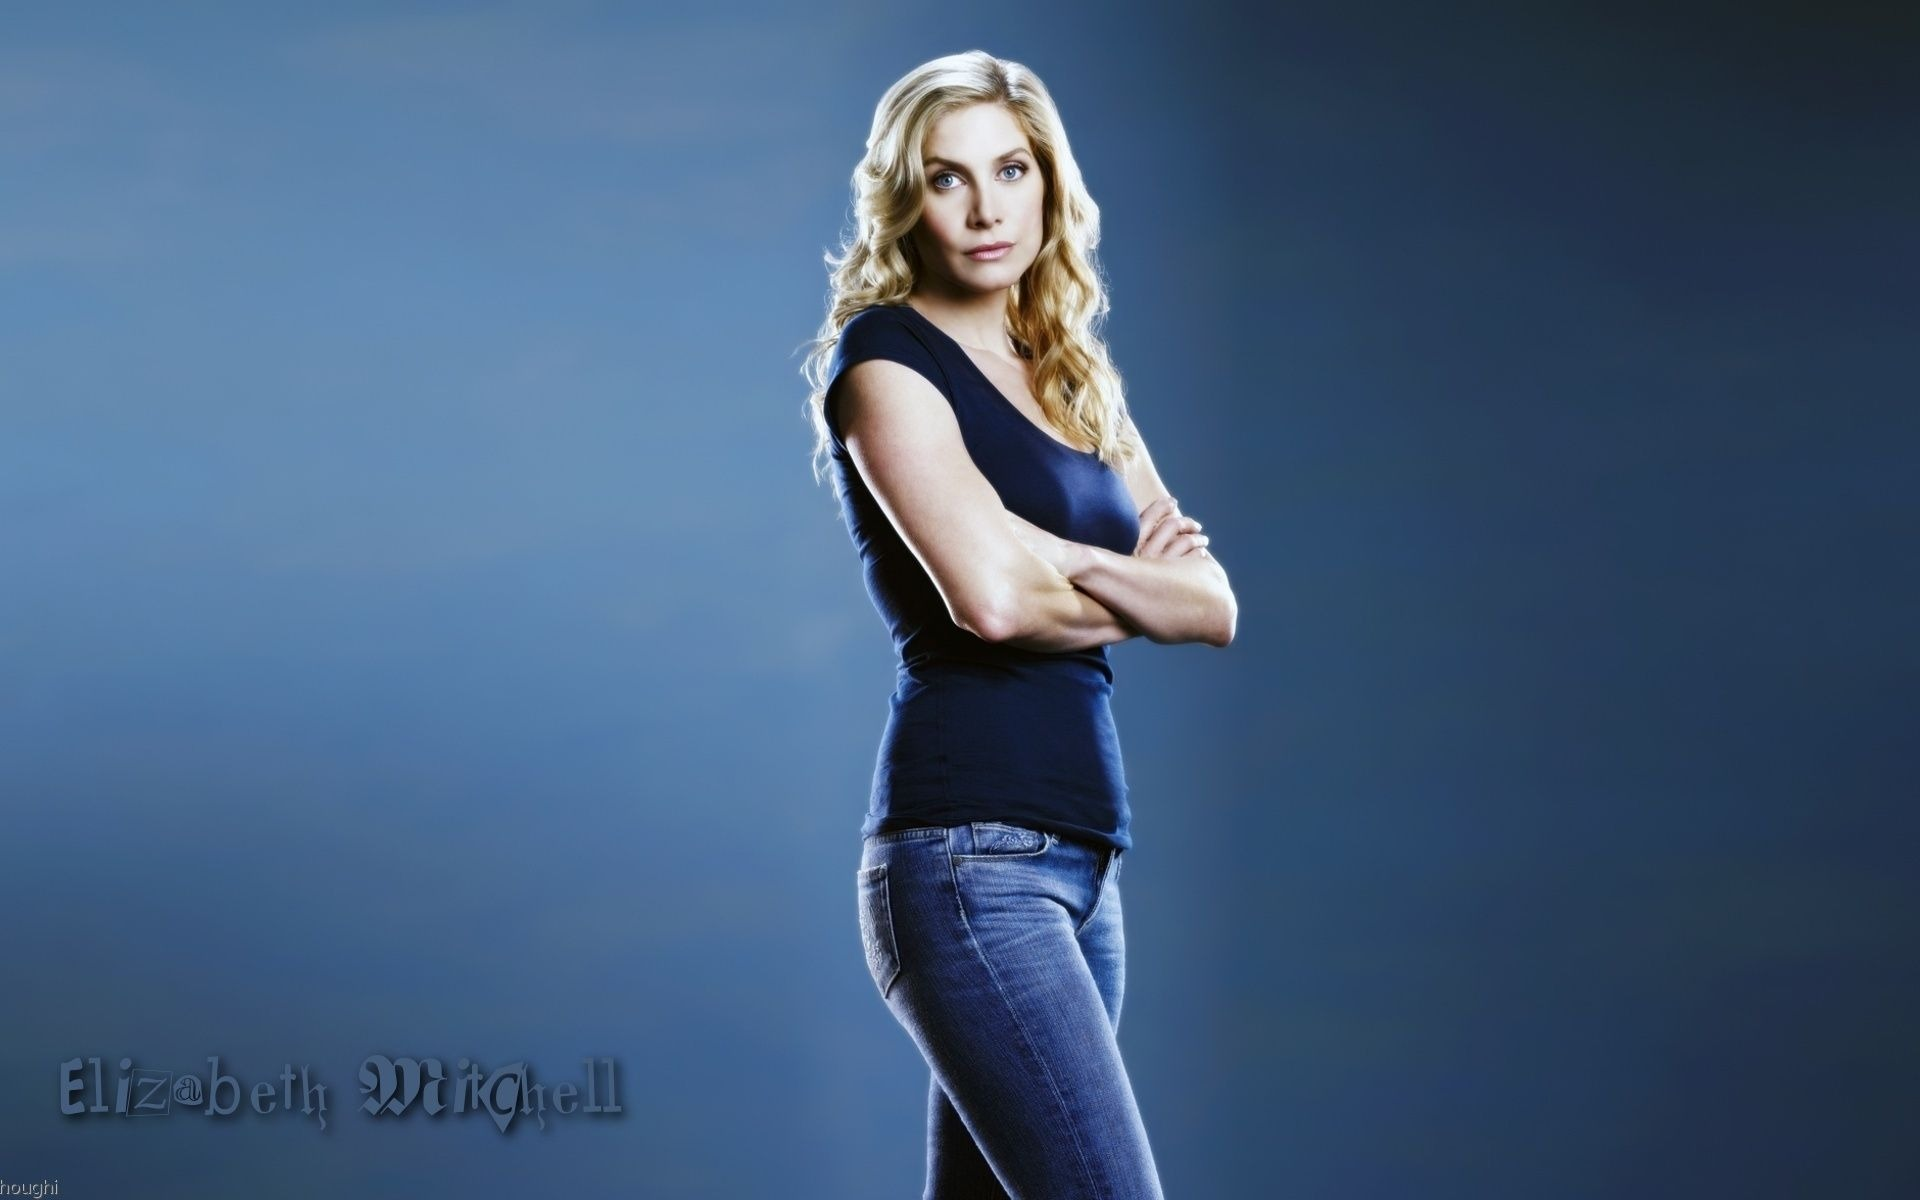 Elizabeth Mitchell #010 - 1920x1200 Wallpapers Pictures Photos Images